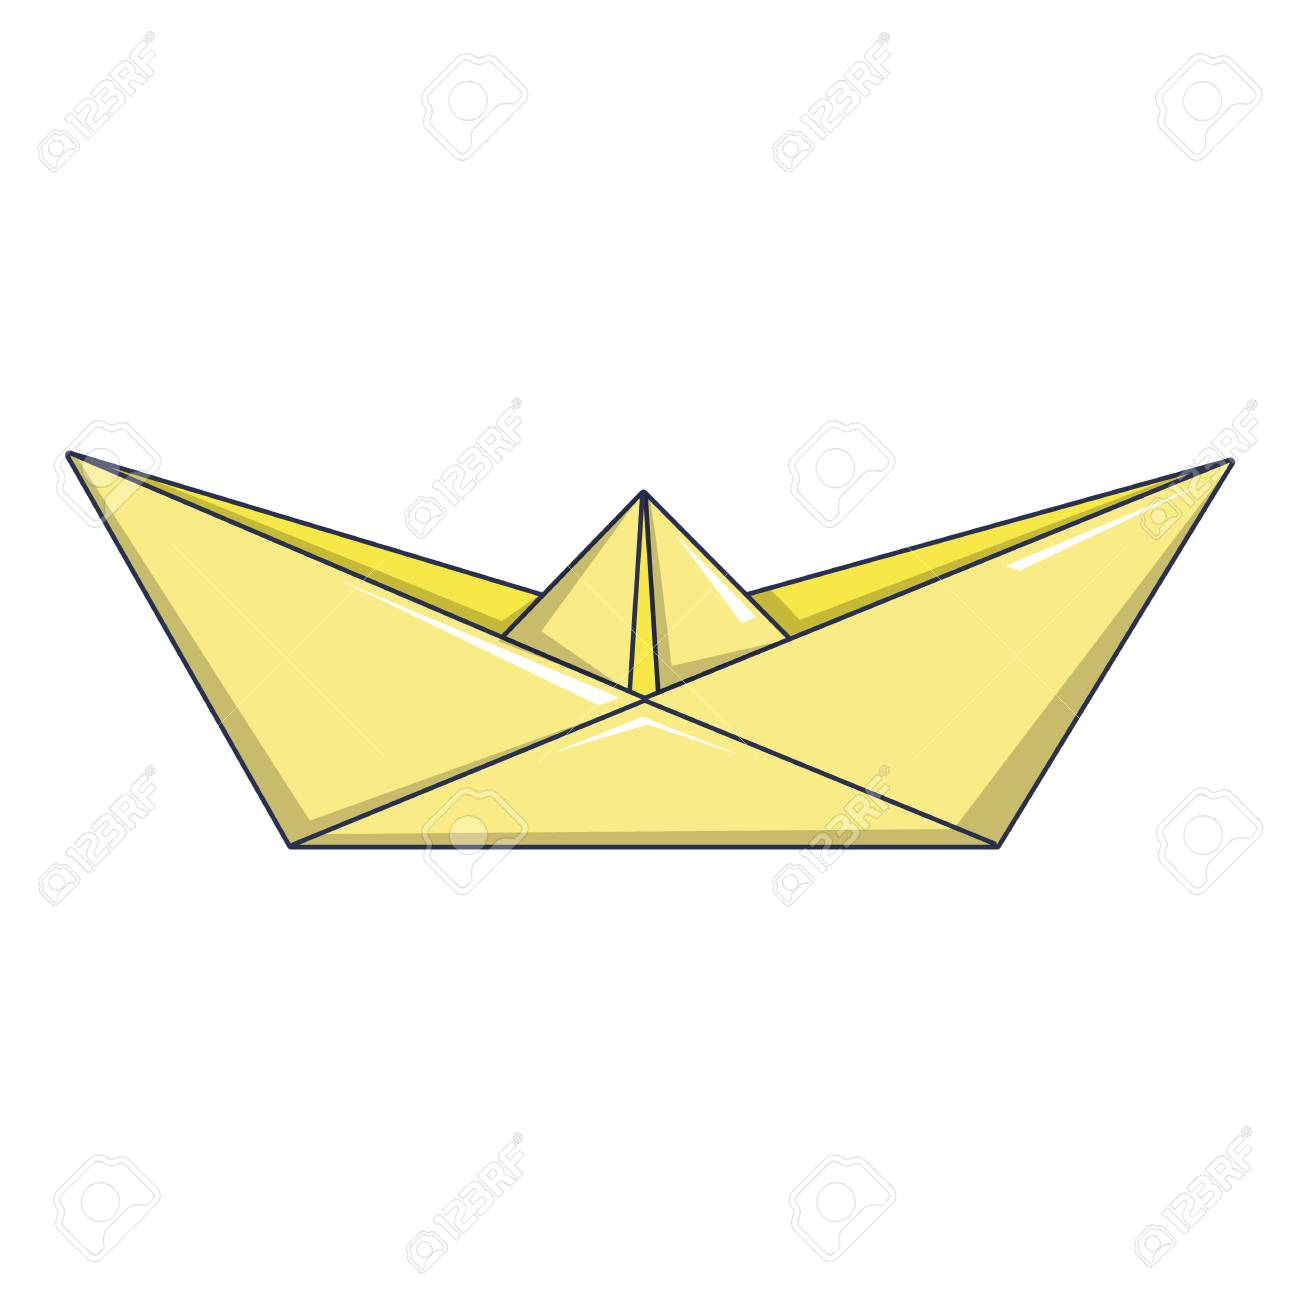 Origami Boat Icon Cartoon Illustration Of Vector For Web Stock